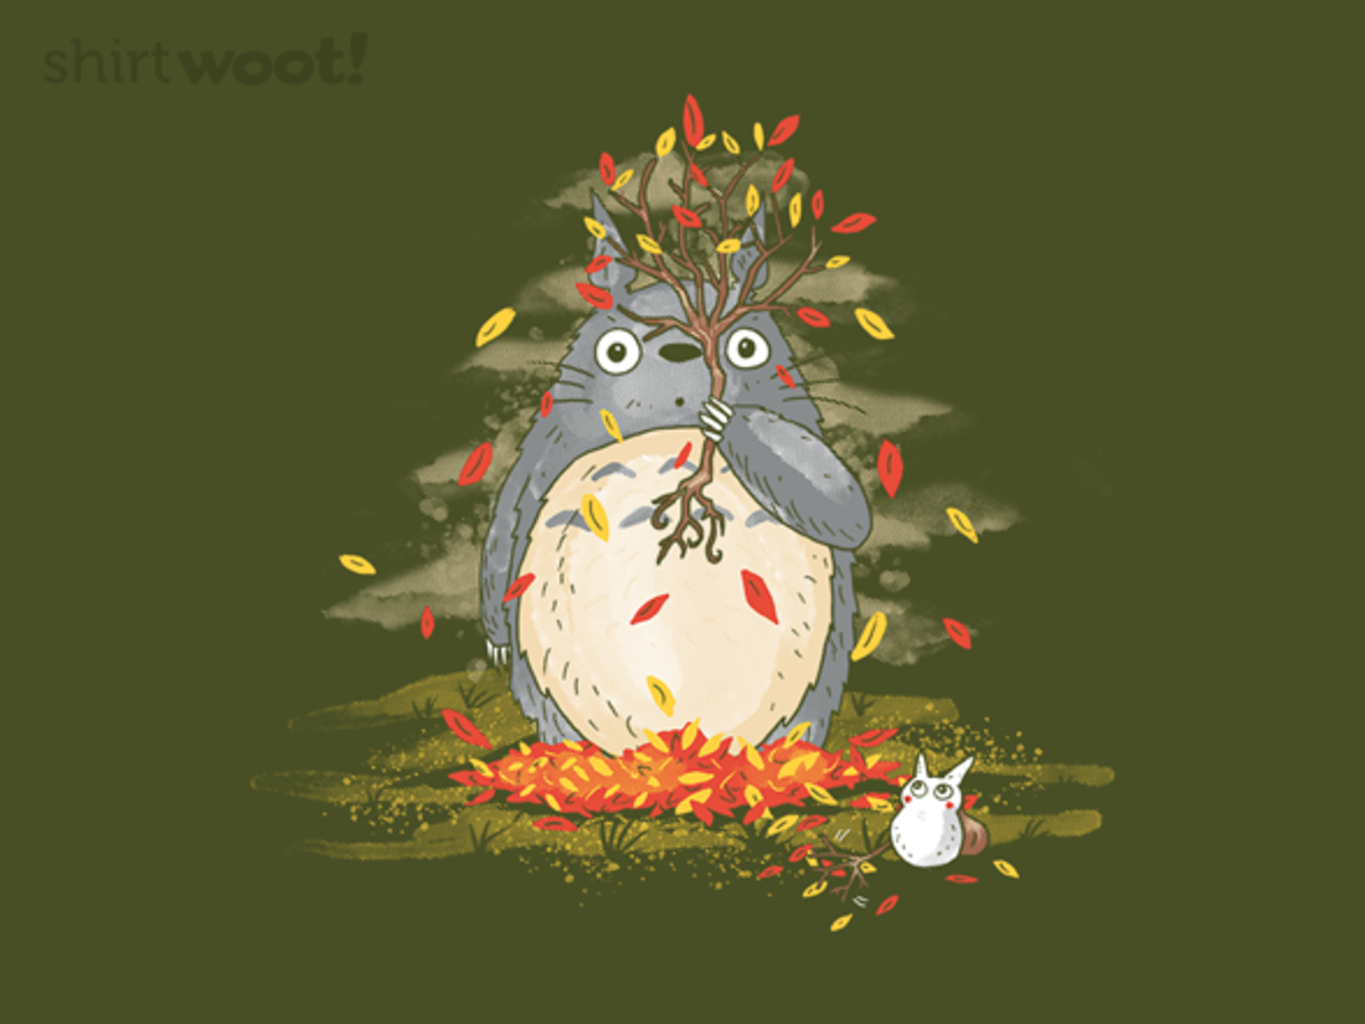 Woot!: Fall Forest Spirit Pullover Hoodie - $21.00 + $5 standard shipping